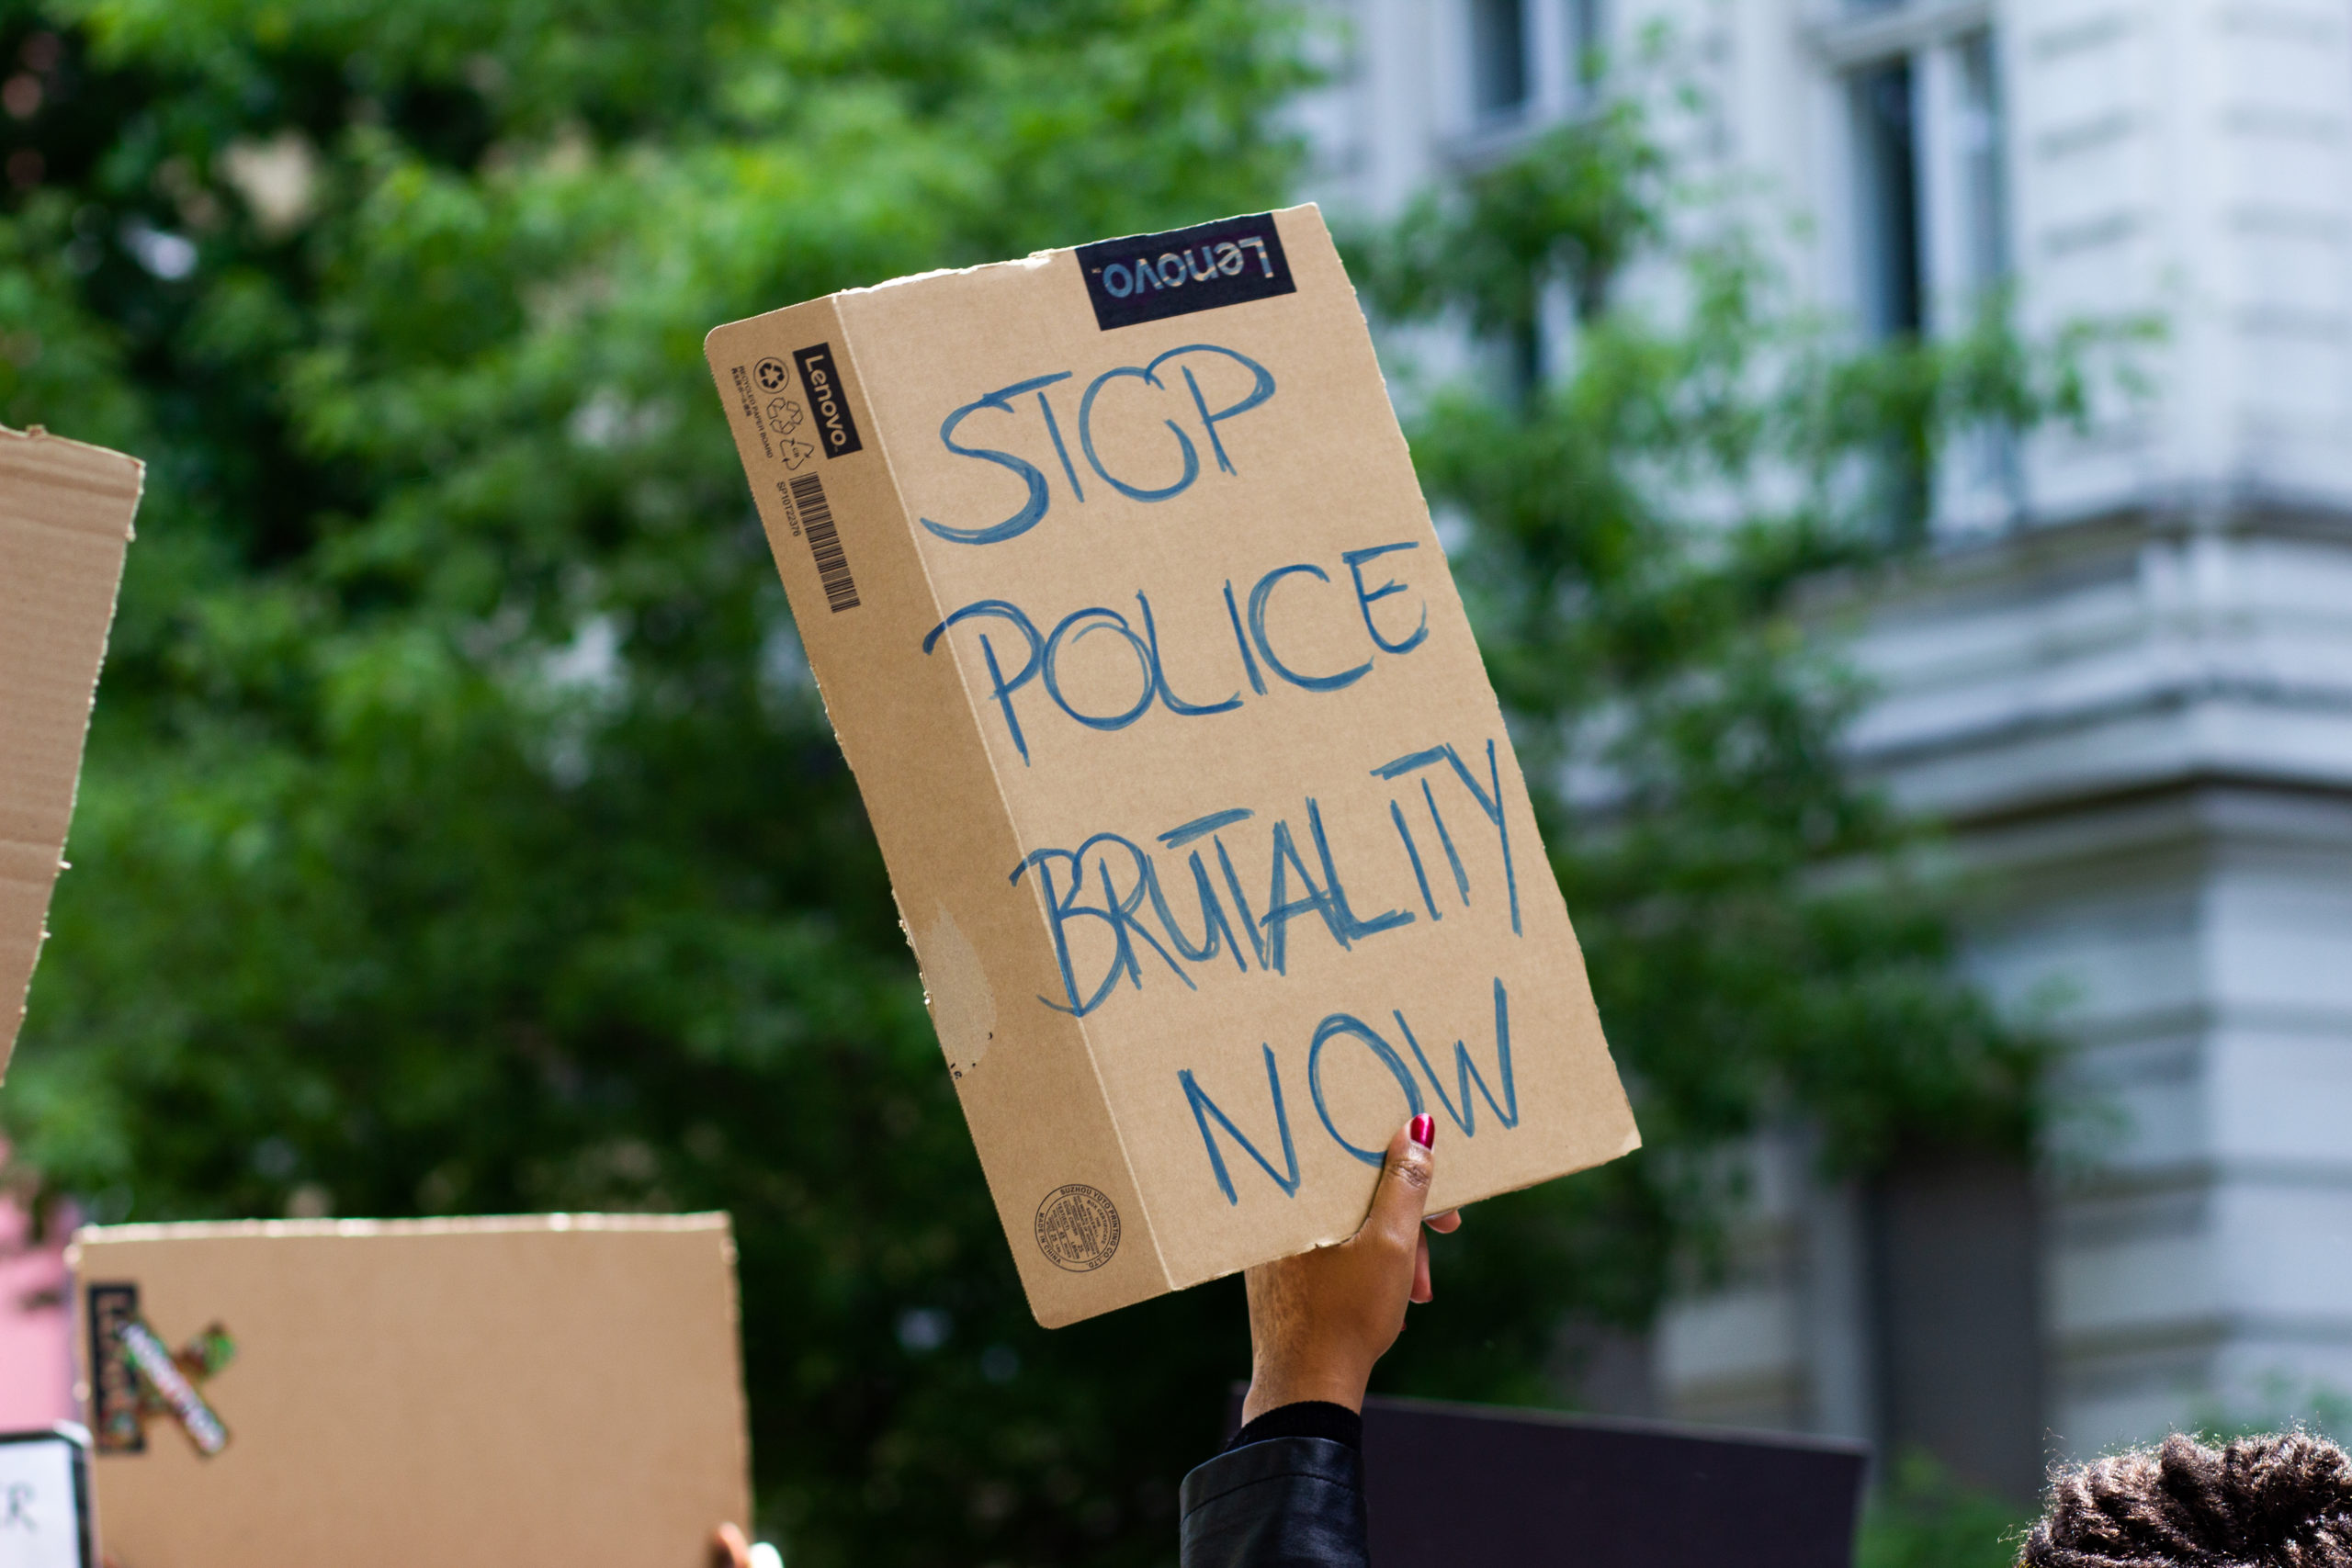 WHAT TO DO IF YOU WITNESS OR EXPERIENCE RACIAL PROFILING AND POLICE BRUTALITY